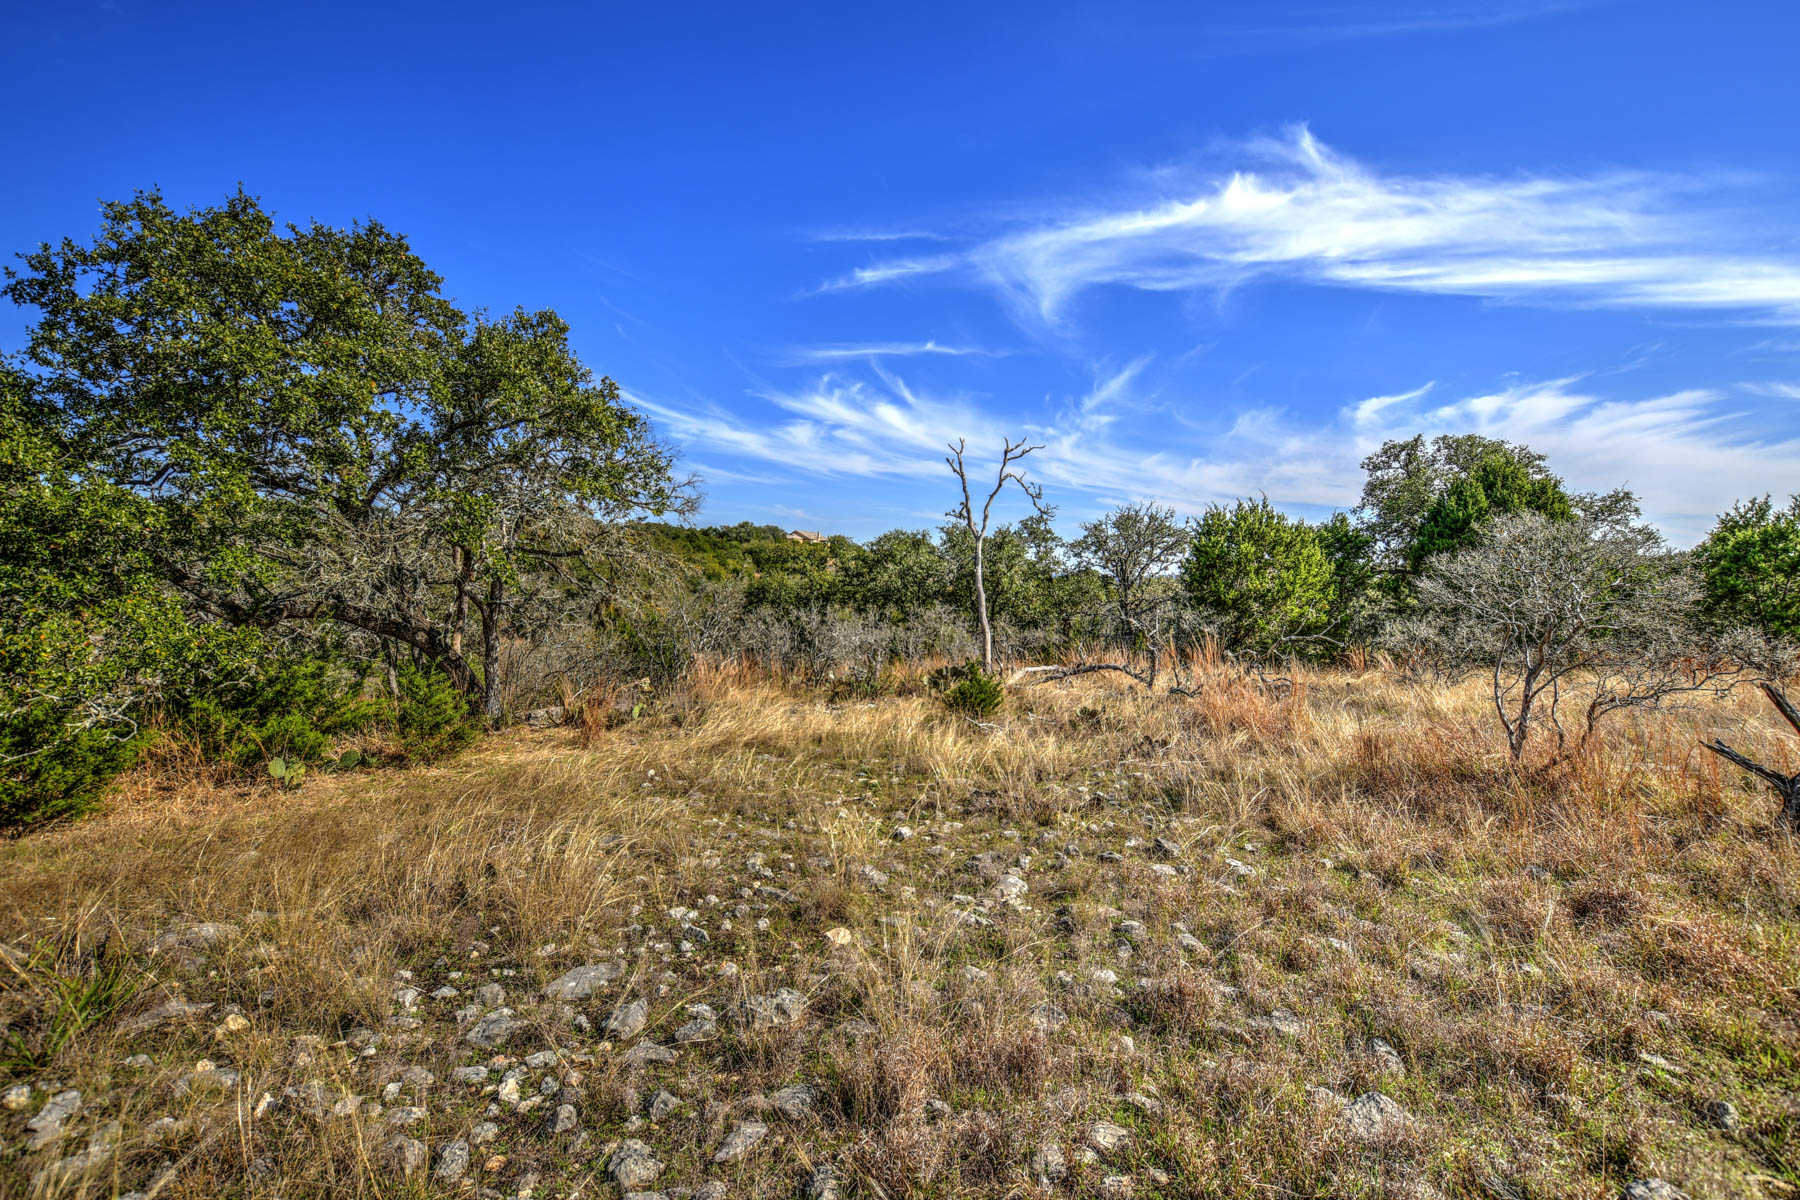 Additional photo for property listing at 334/346 Blackbird Drive, Spring Branch, TX 78070 334/346 Blackbird Drive Spring Branch, Texas 78070 United States